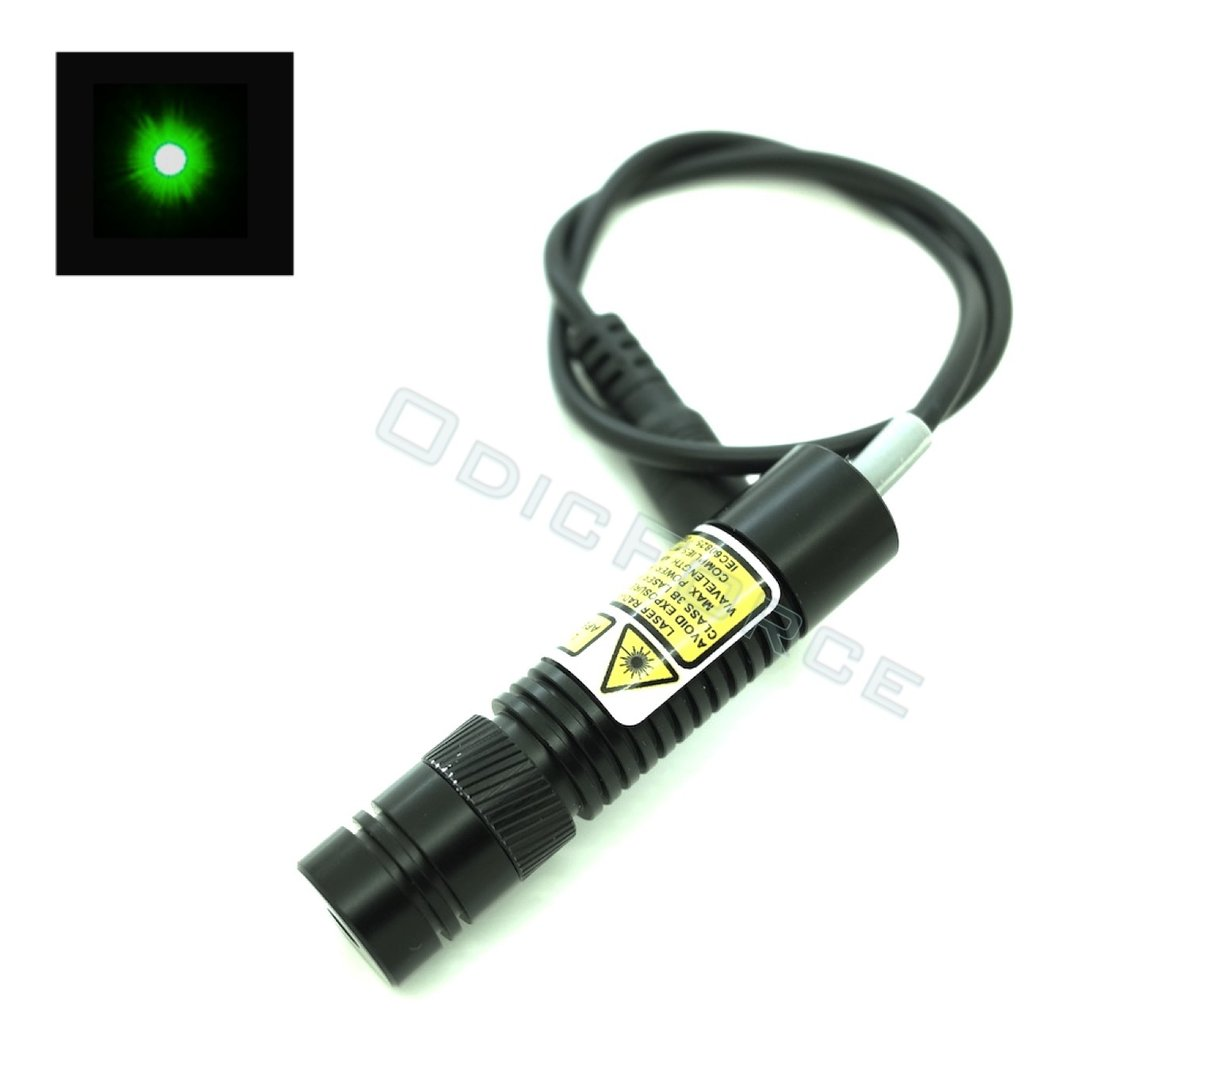 10mW Green (520nm) Locking Focus Direct Diode Laser Module Dot Pattern (16mm, 3-5V)